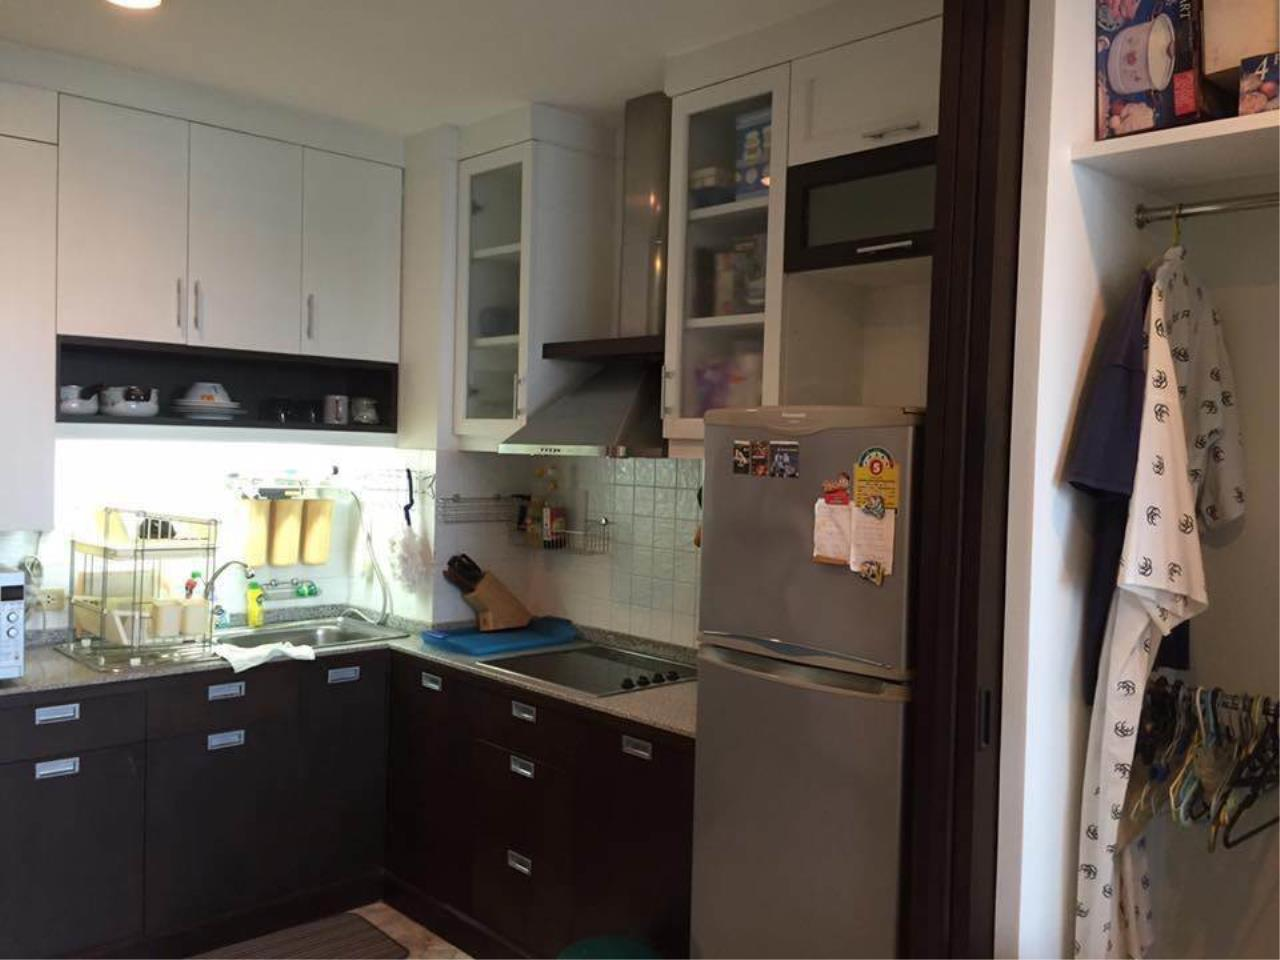 RE/MAX All Star Realty Agency's Sathorn House Condo for rent (BTS Sarasak) 10